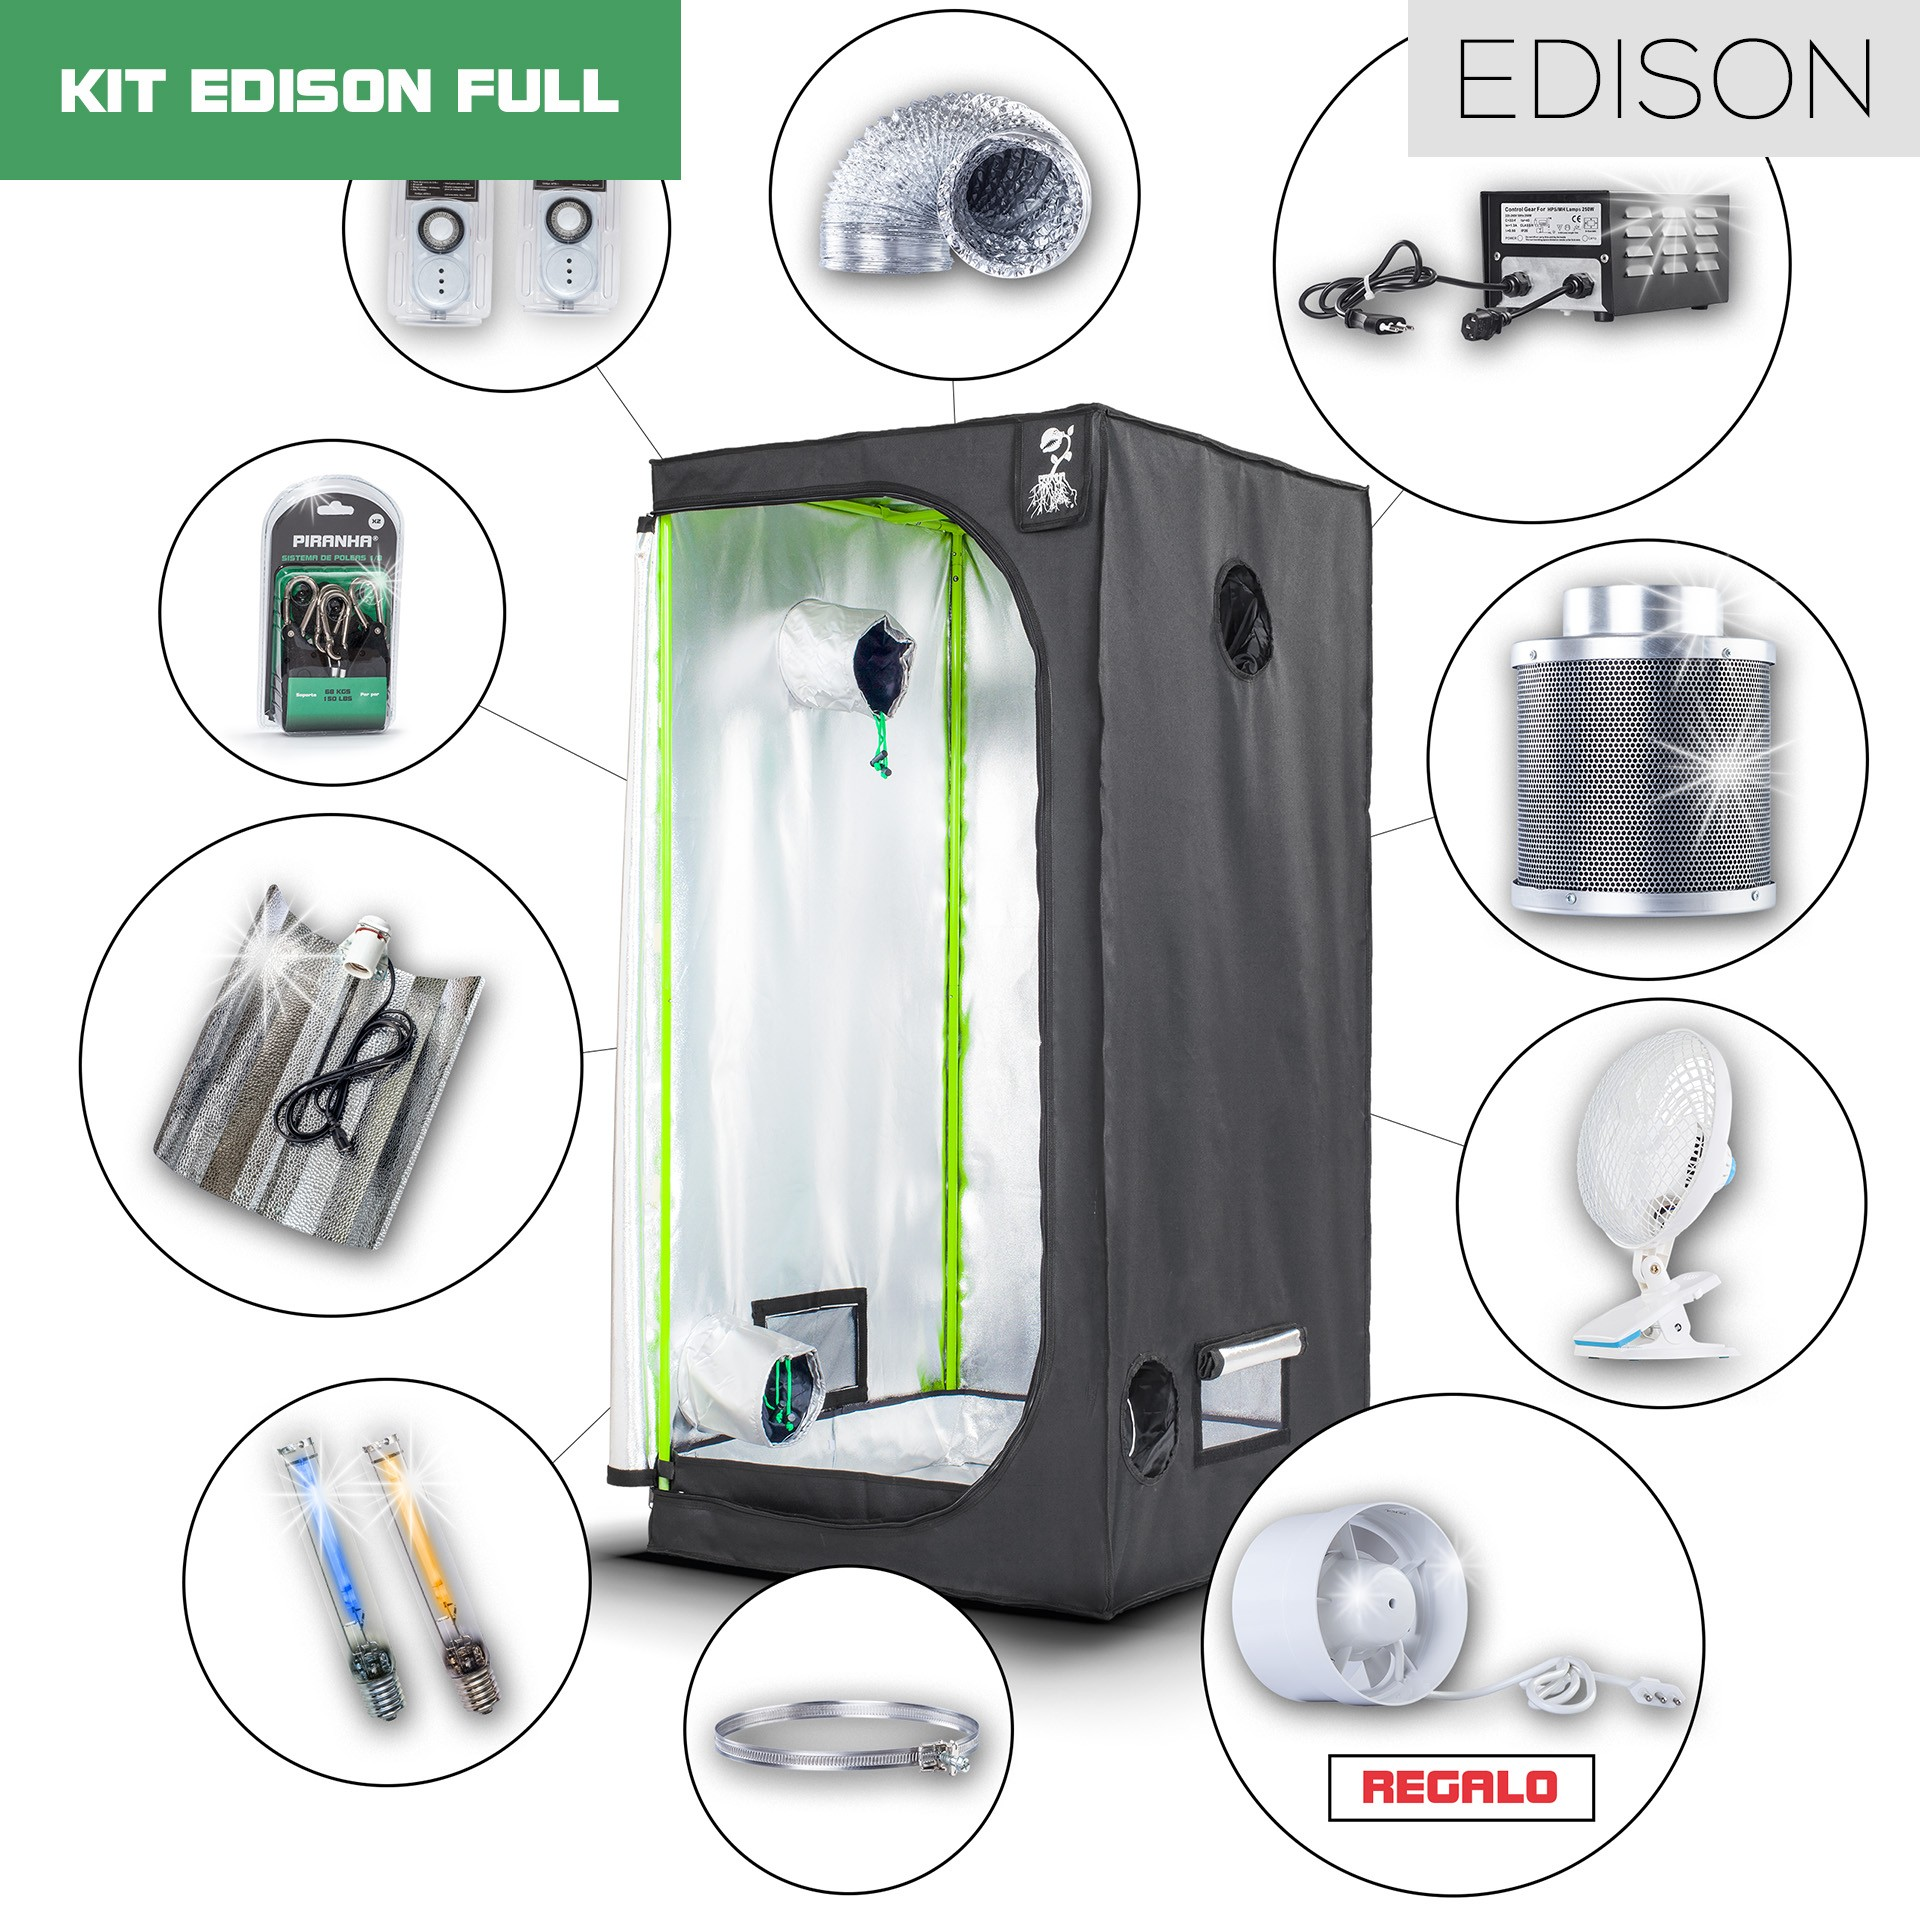 Kit Edison 80 - 250W Full